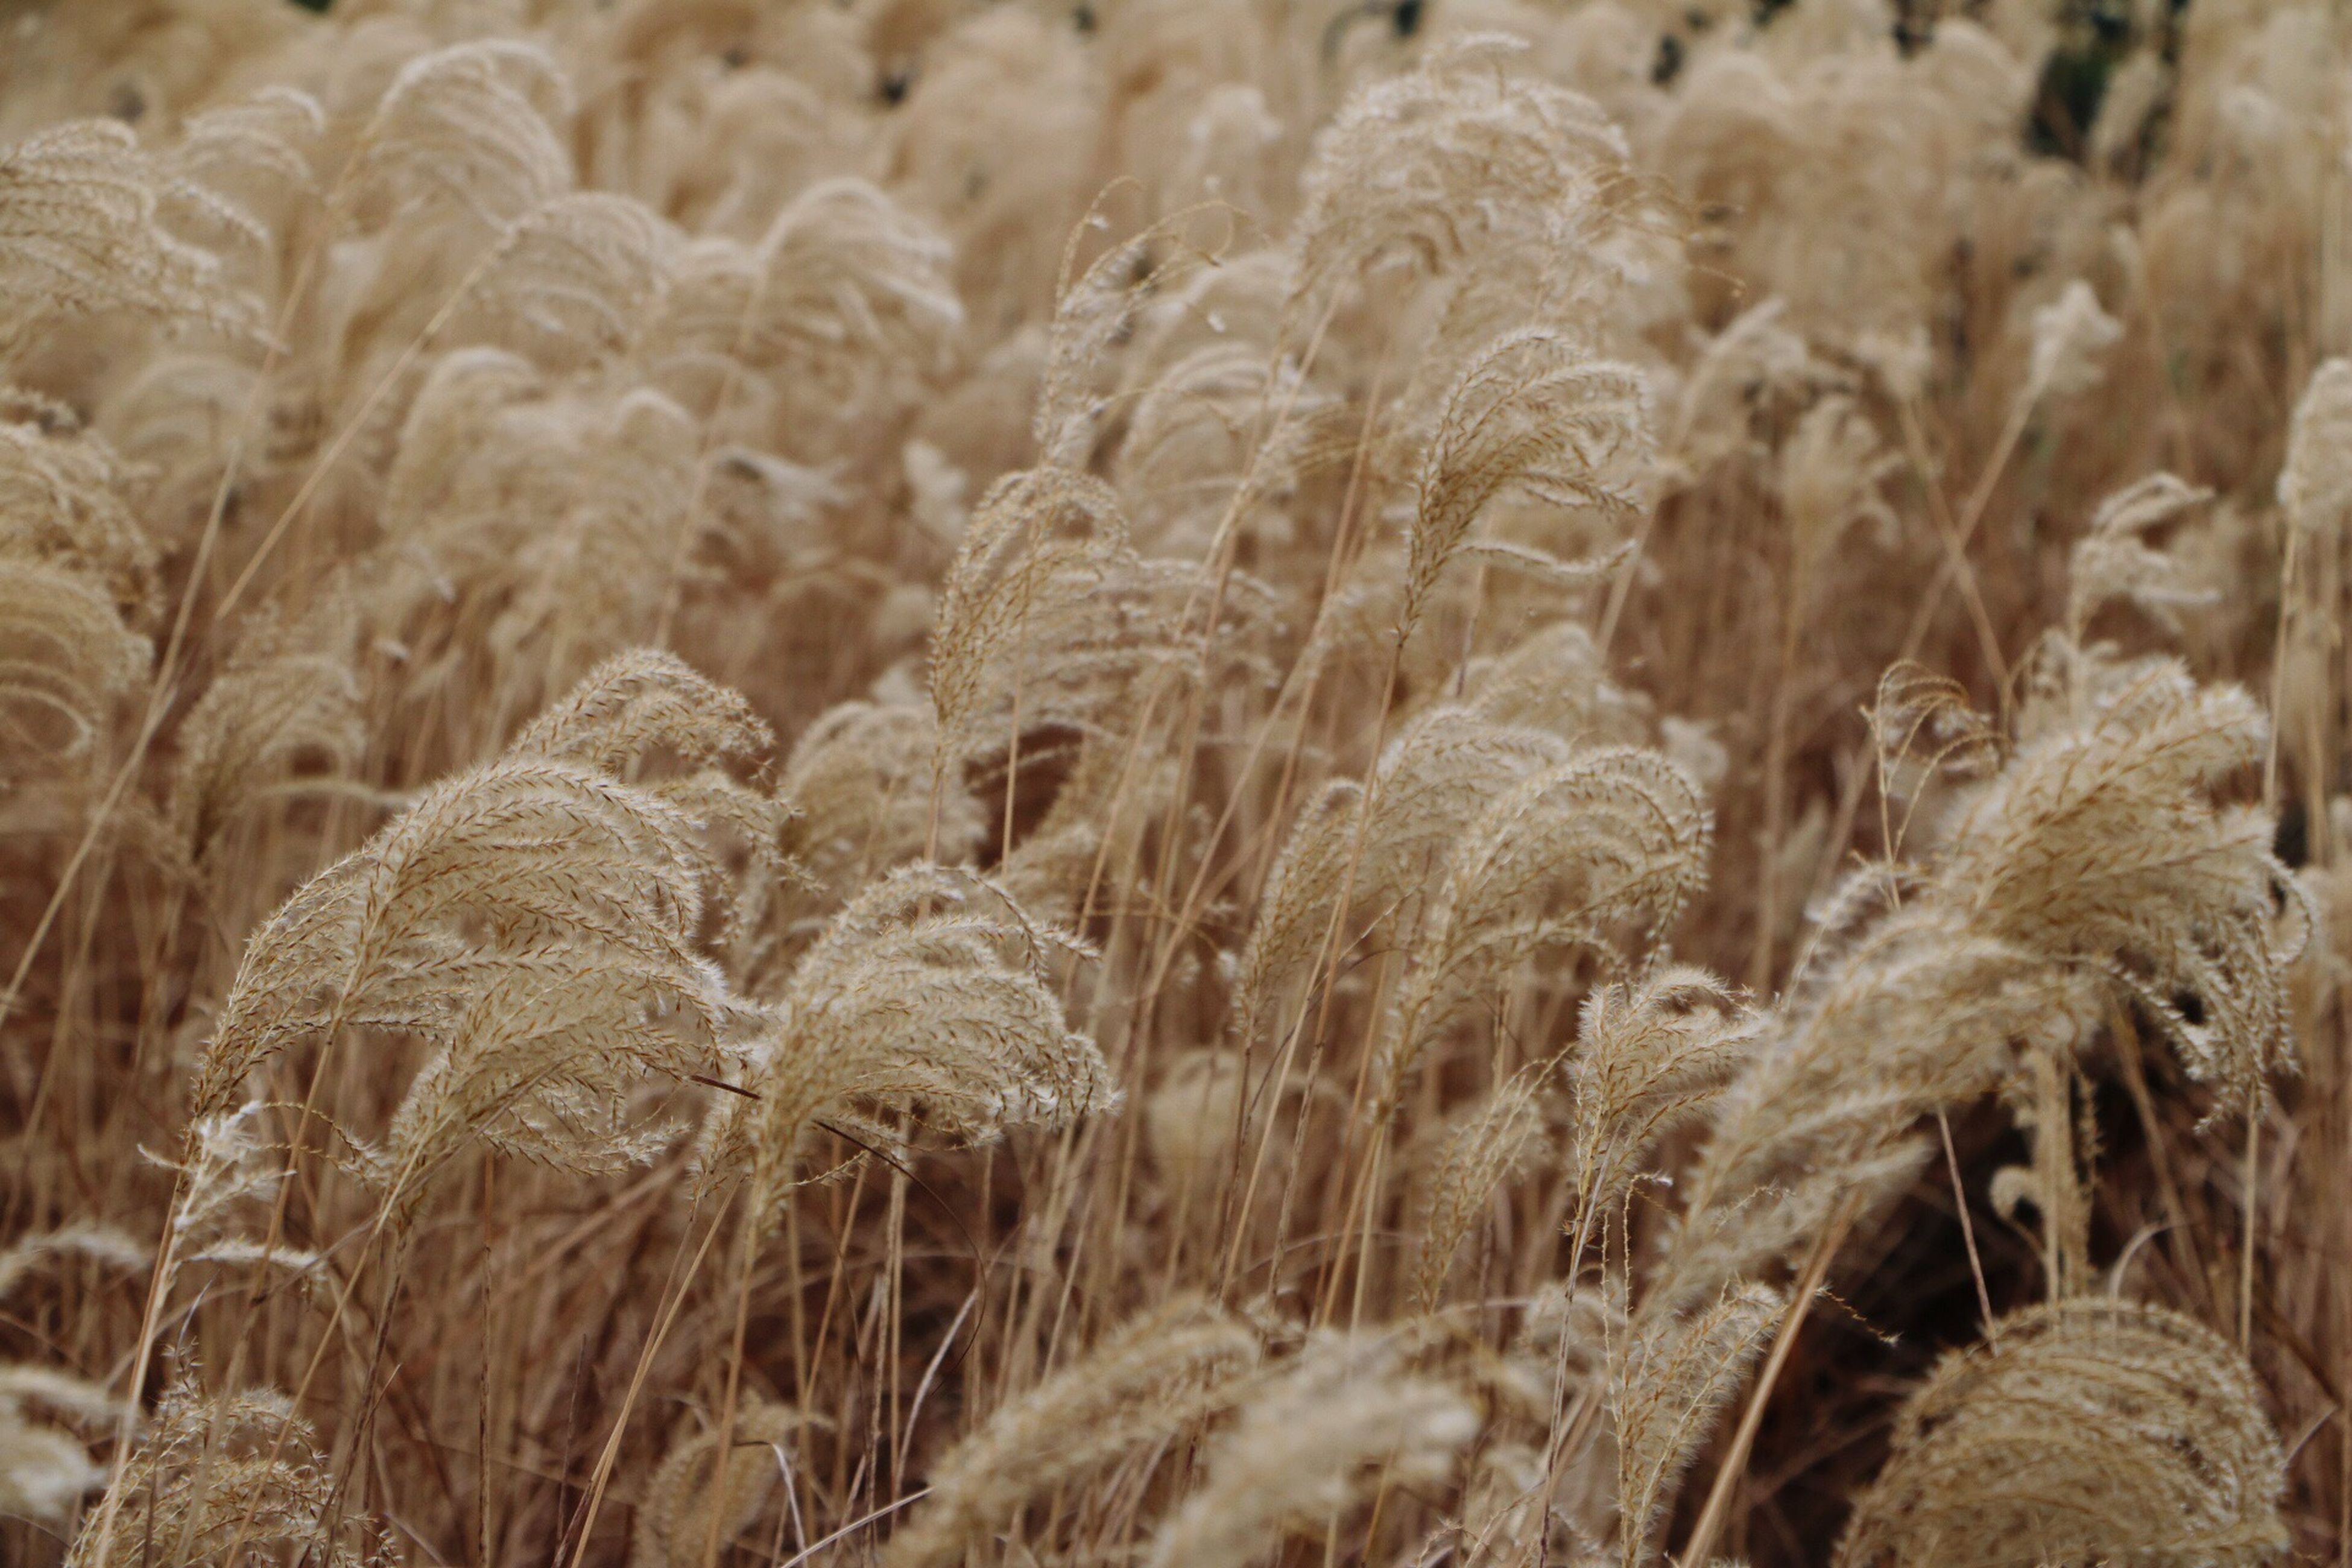 nature, growth, field, crop, tranquility, no people, plant, agriculture, rural scene, beauty in nature, outdoors, cereal plant, close-up, full frame, day, scenics, wheat